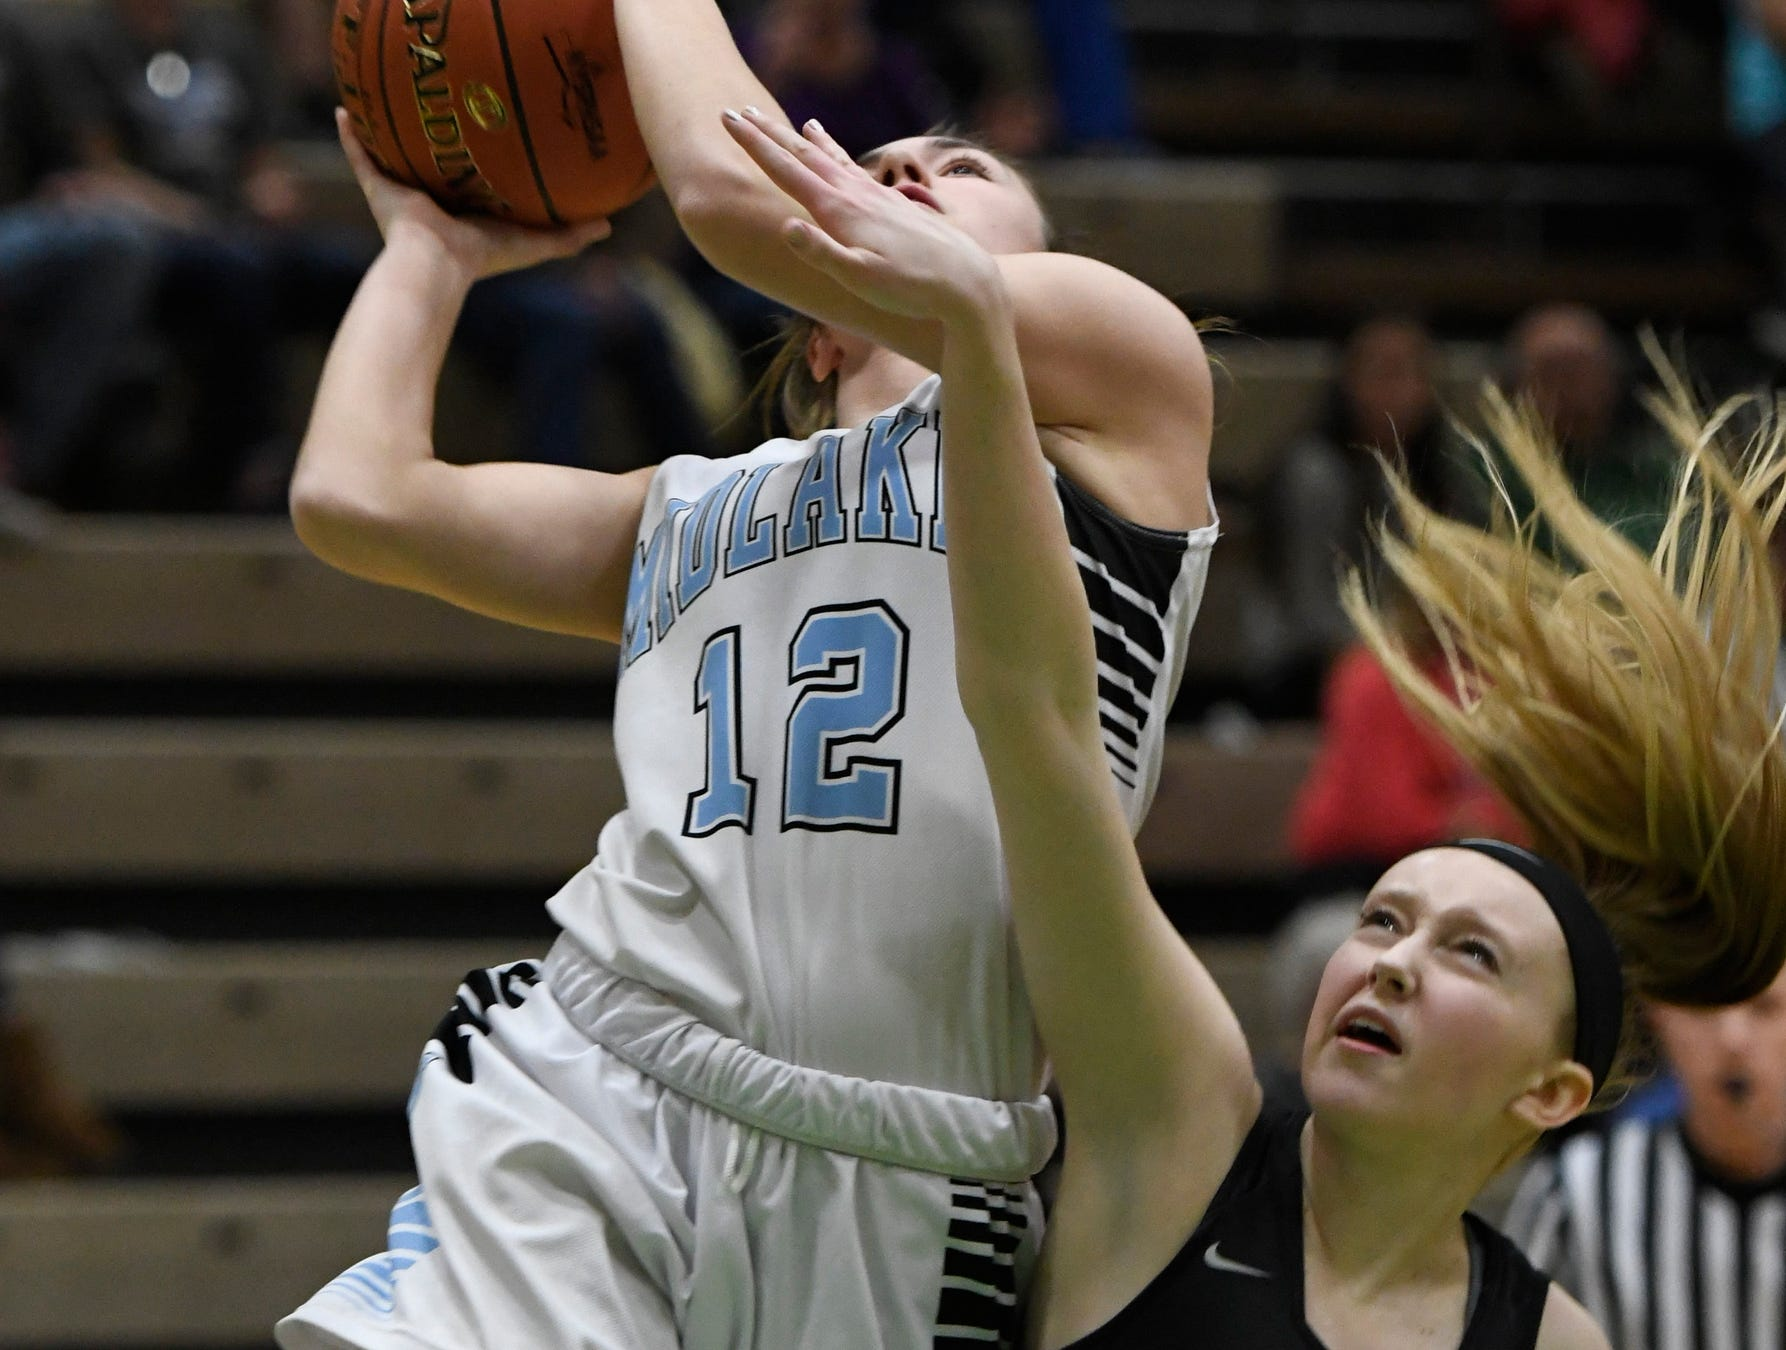 Canton's Sarah Sieminski attempts to stop a jump shot by Midlakes' Alaina Forbes during its Class B State Semifinal at Hudson Valley Community College in Troy, N.Y. on Friday, Mar. 15, 2019.